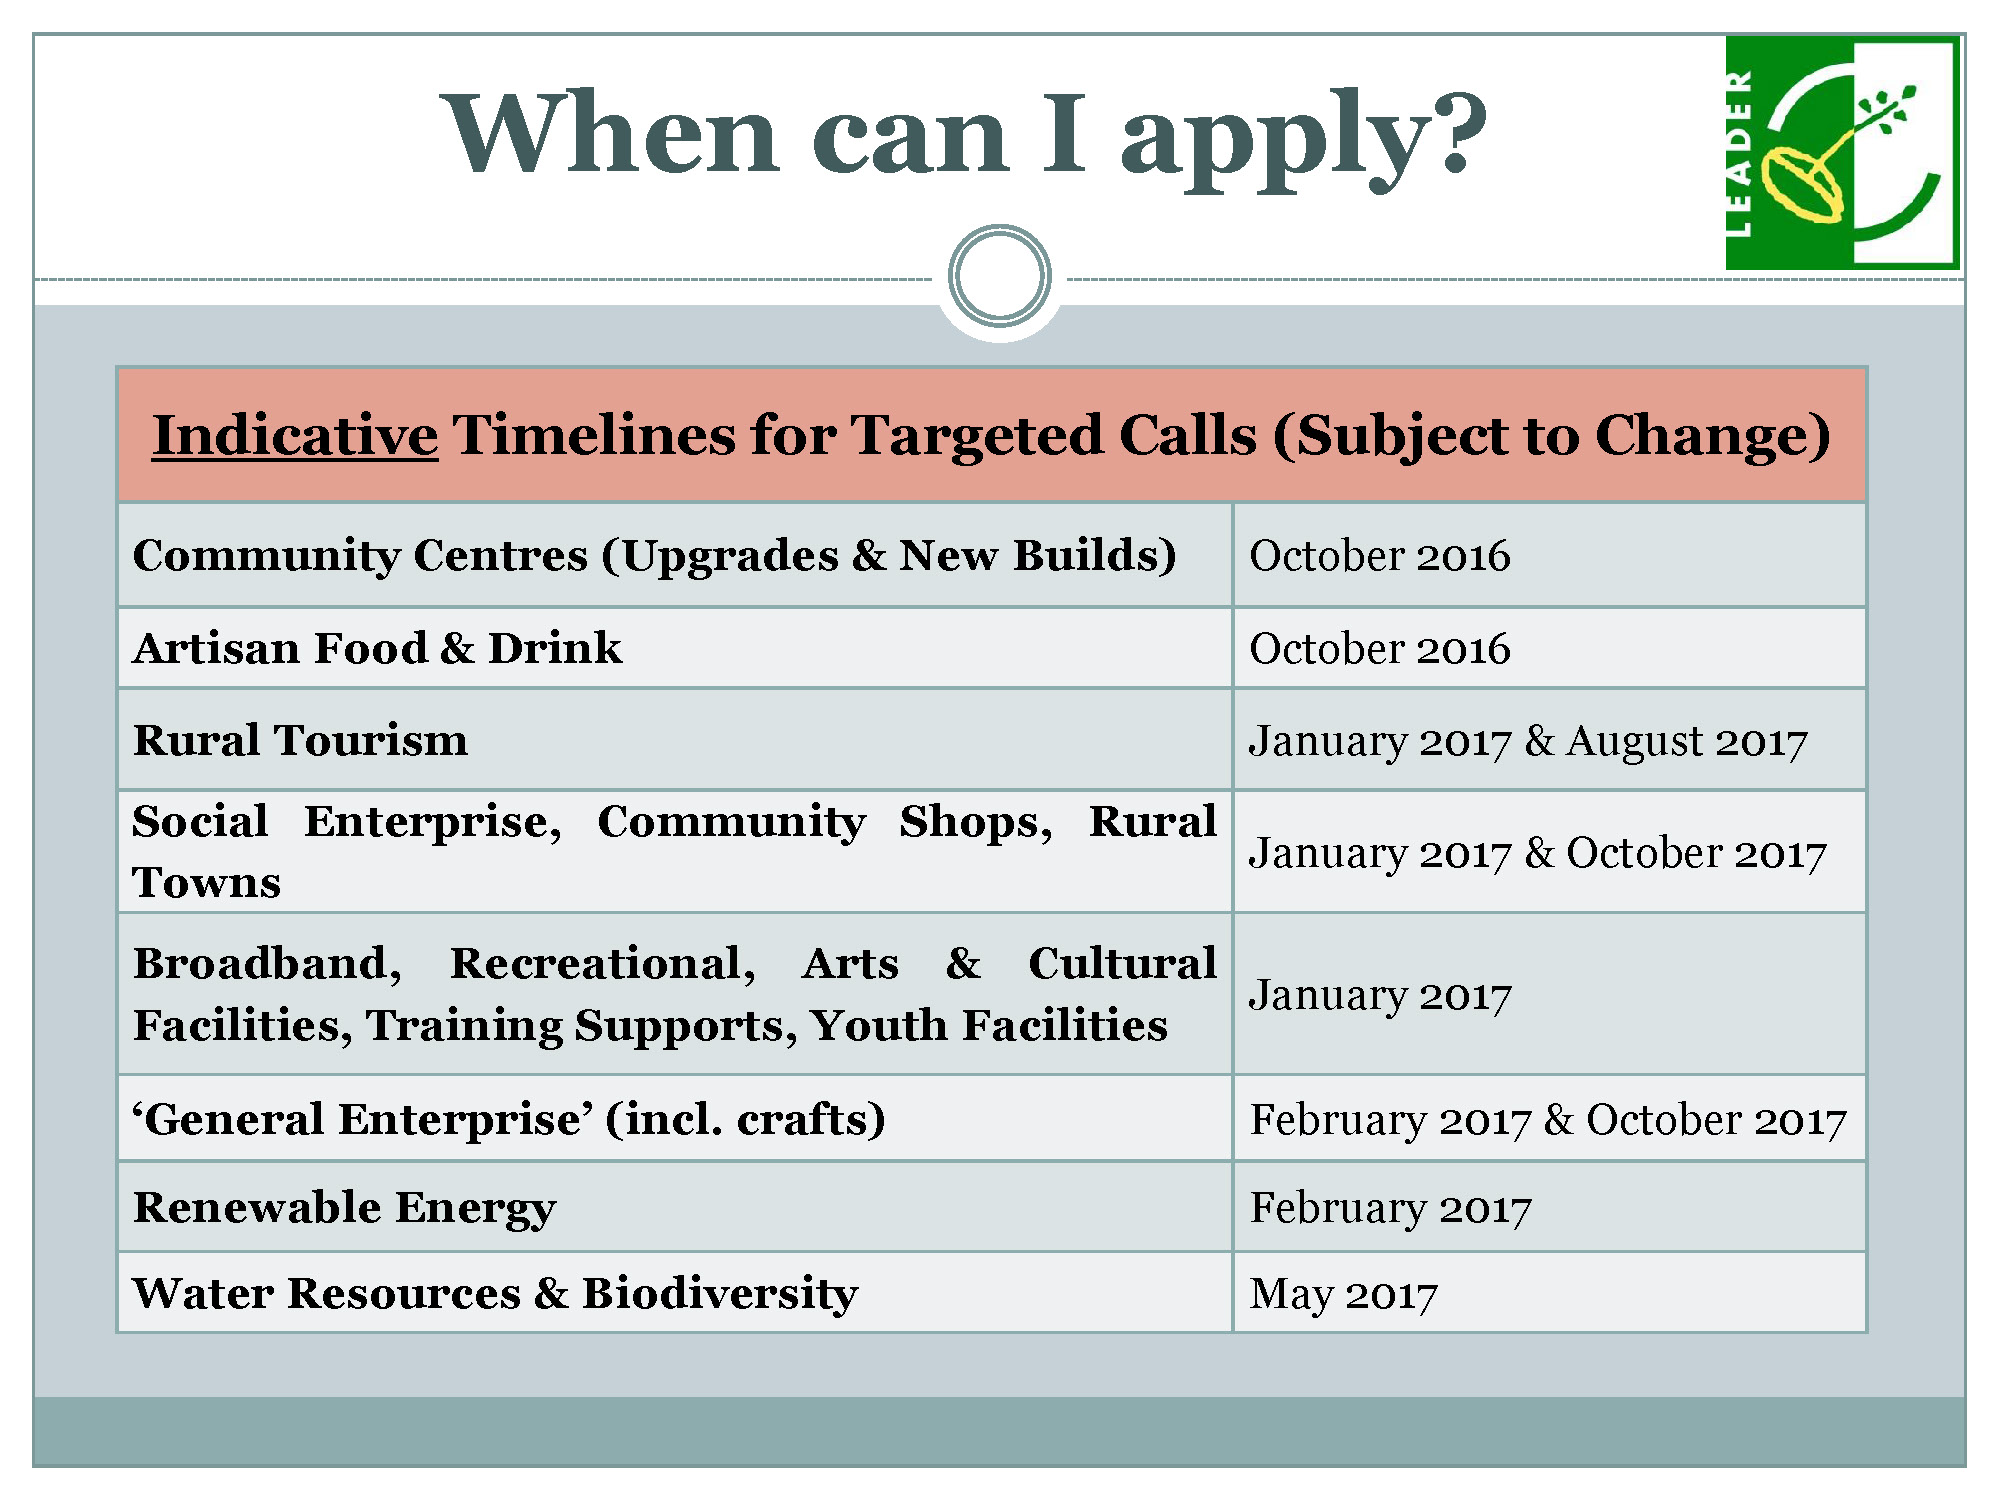 LEADER Programme Indicative Timelines 2016 - When can I apply?